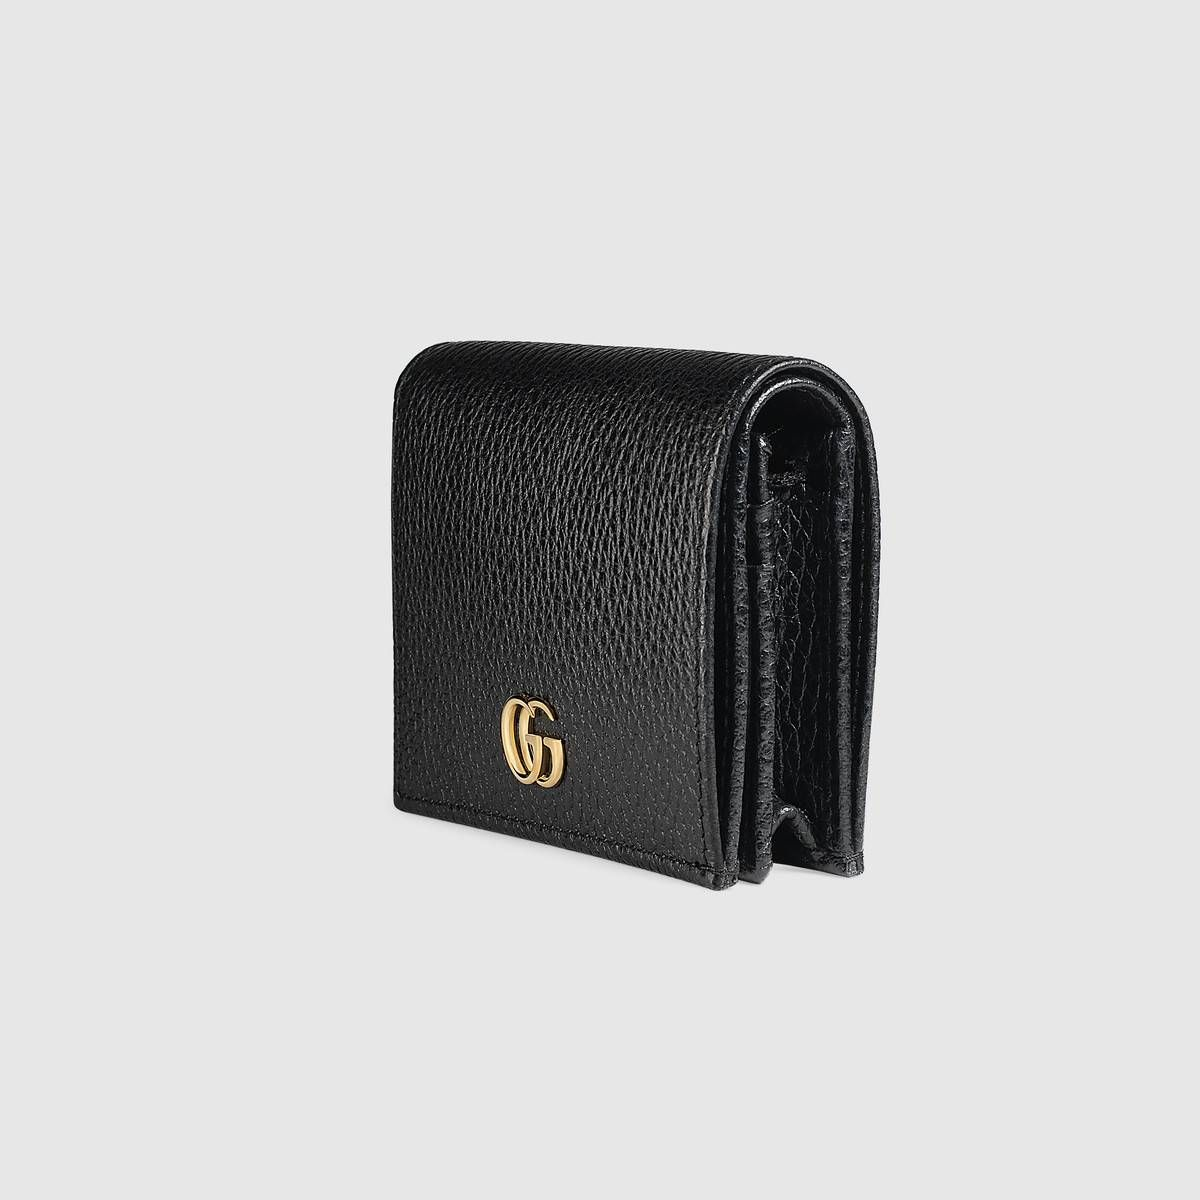 4e4ef329777 Leather card case in Black leather